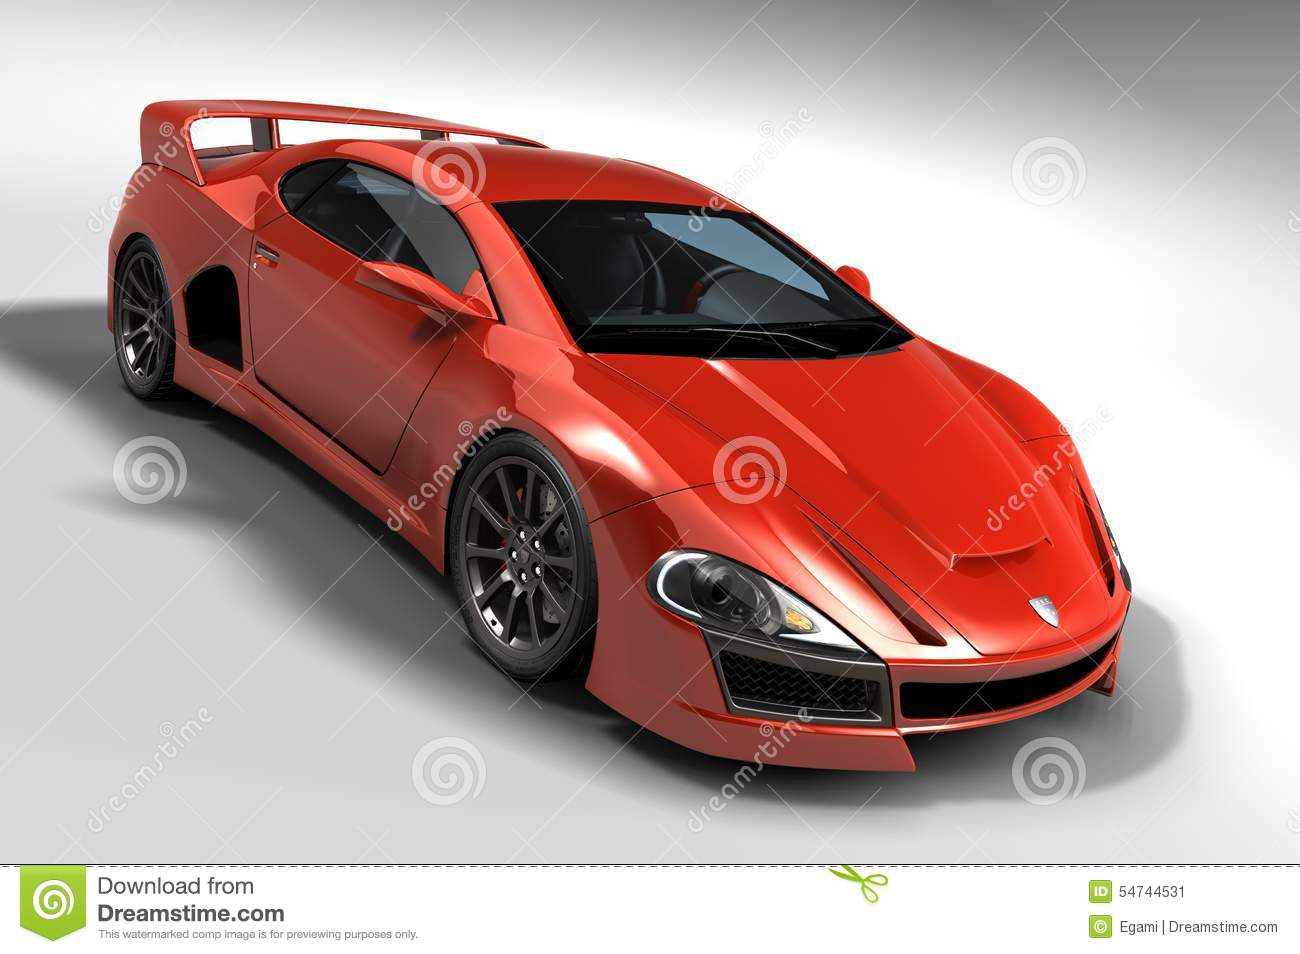 red gt car stock illustration image 54744531. Black Bedroom Furniture Sets. Home Design Ideas